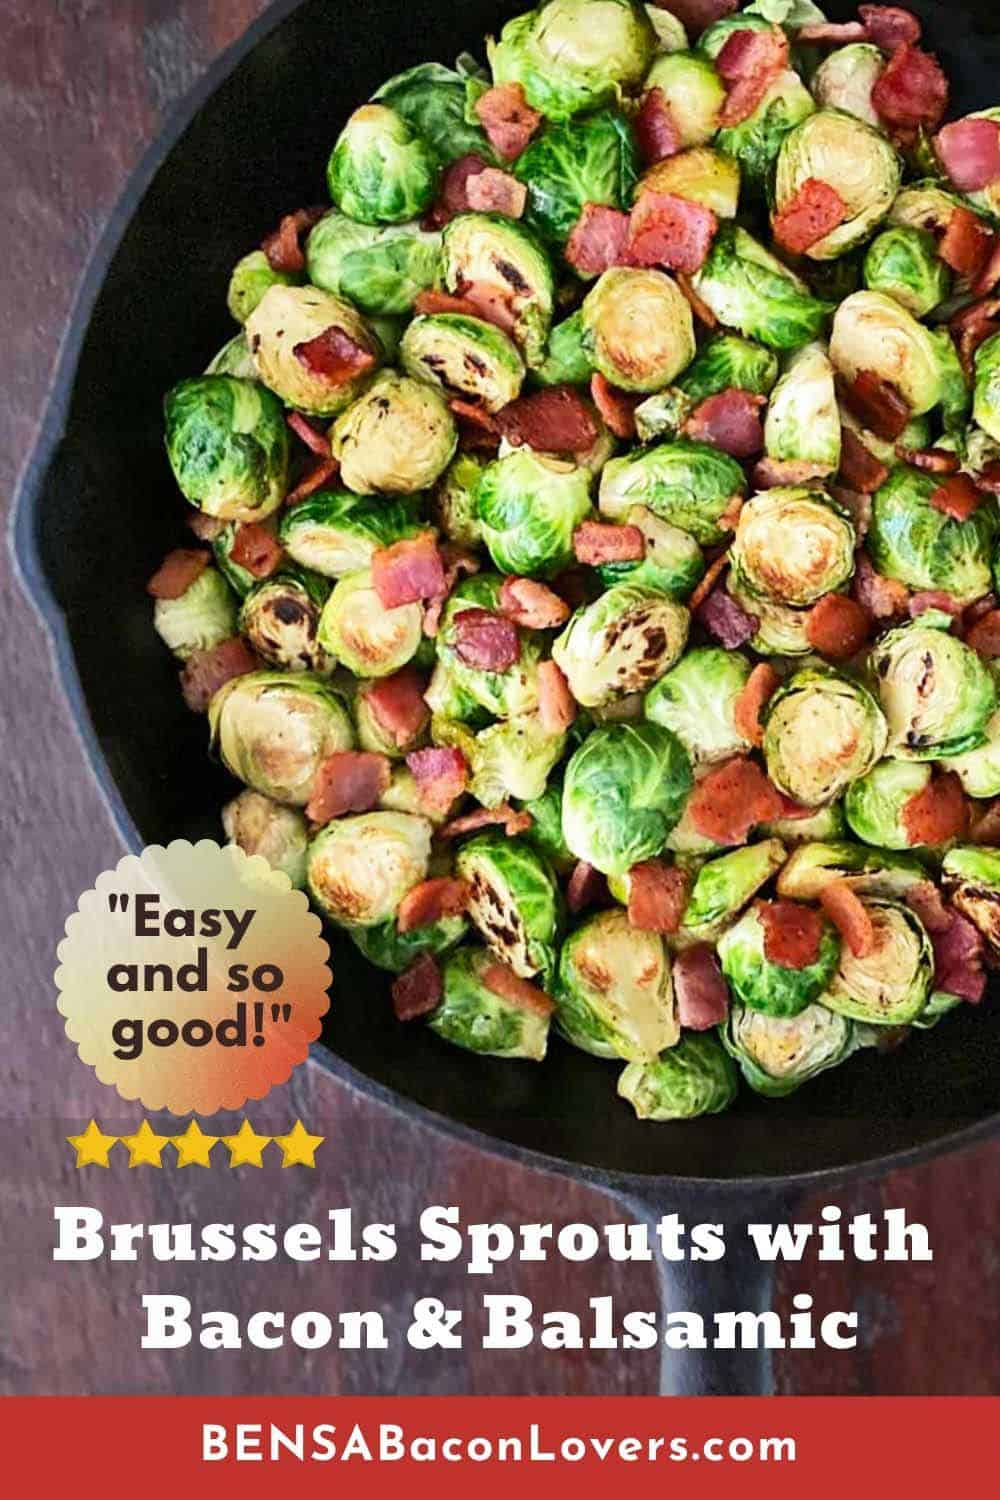 A vertical Pinterest image of a skillet with bacon brussels sprouts and the recipe title